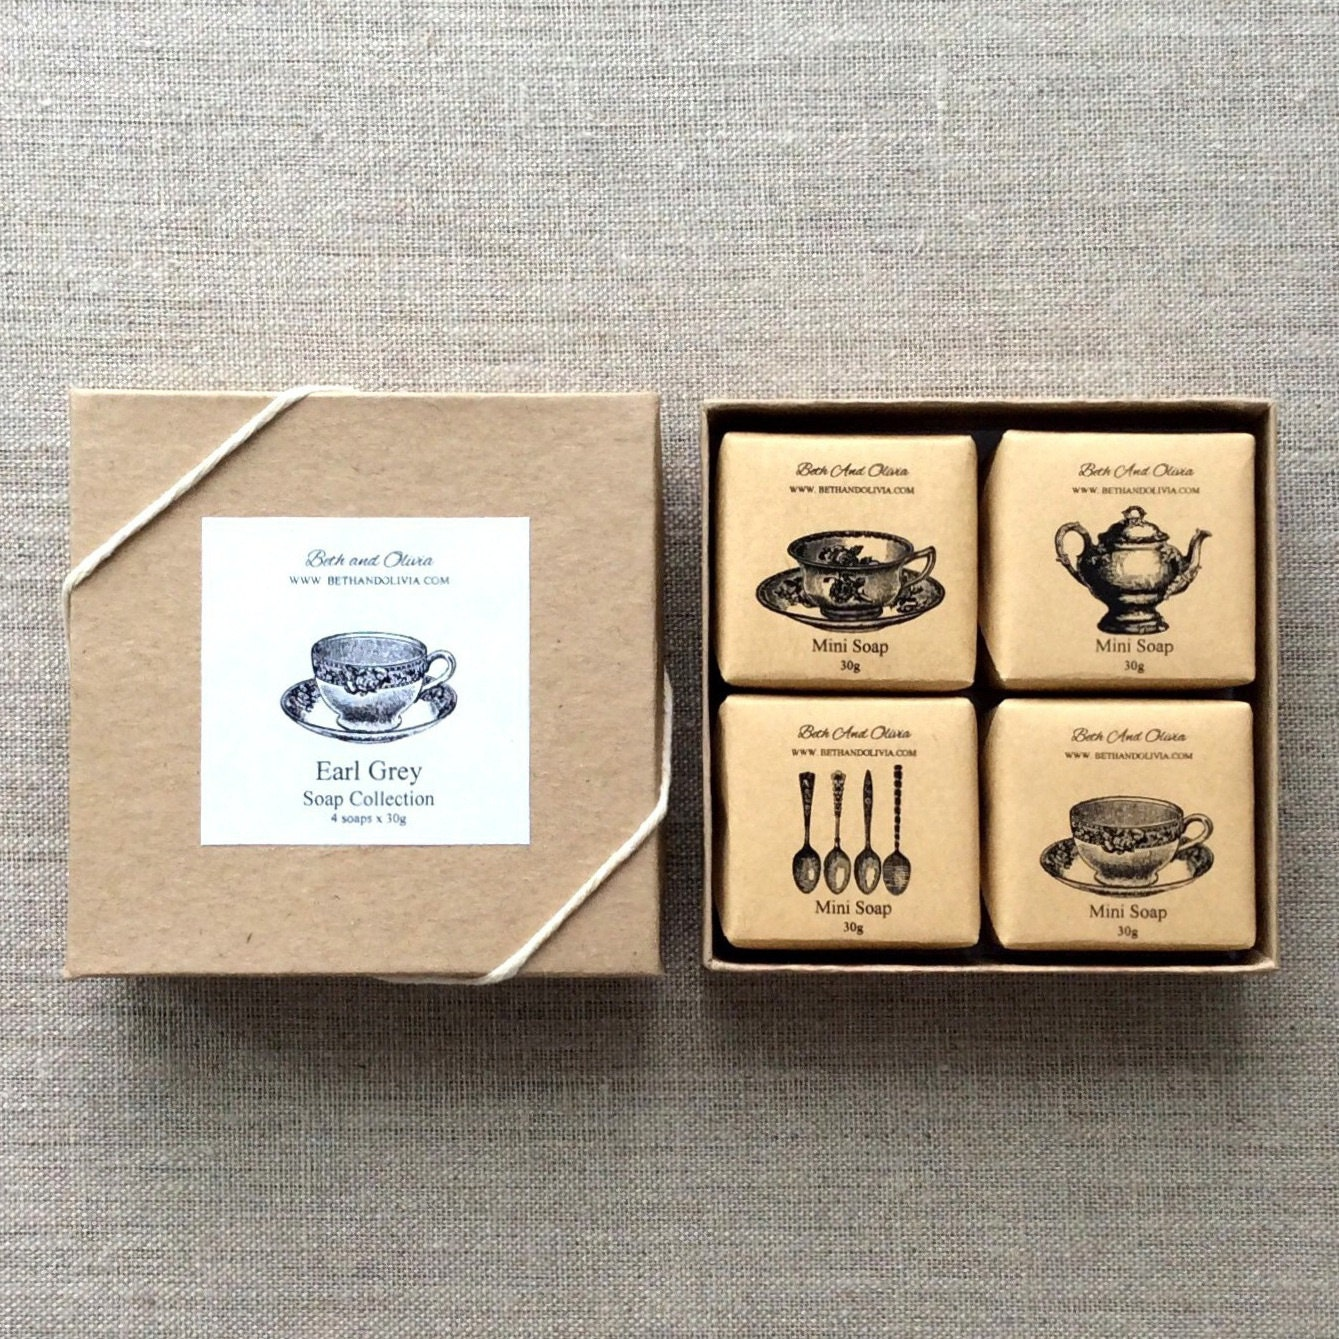 Tea Soap Gift Set, Earl Grey soap gift set, Tea themed soap set, soap gift box, bridesmaid gift, hostess gift, Wholesale soap Set